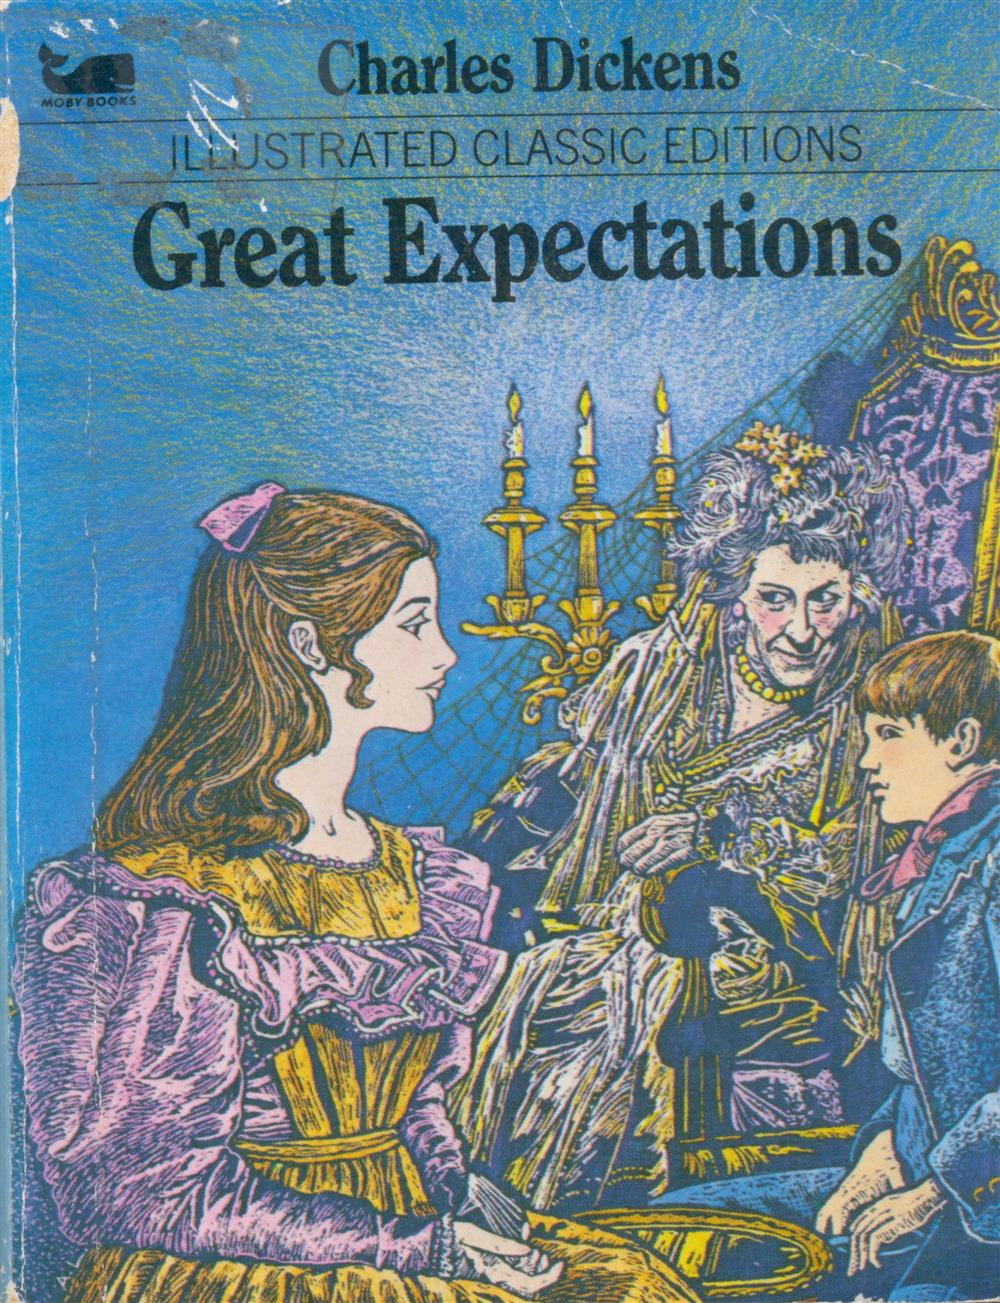 Great expectations 001.jpg